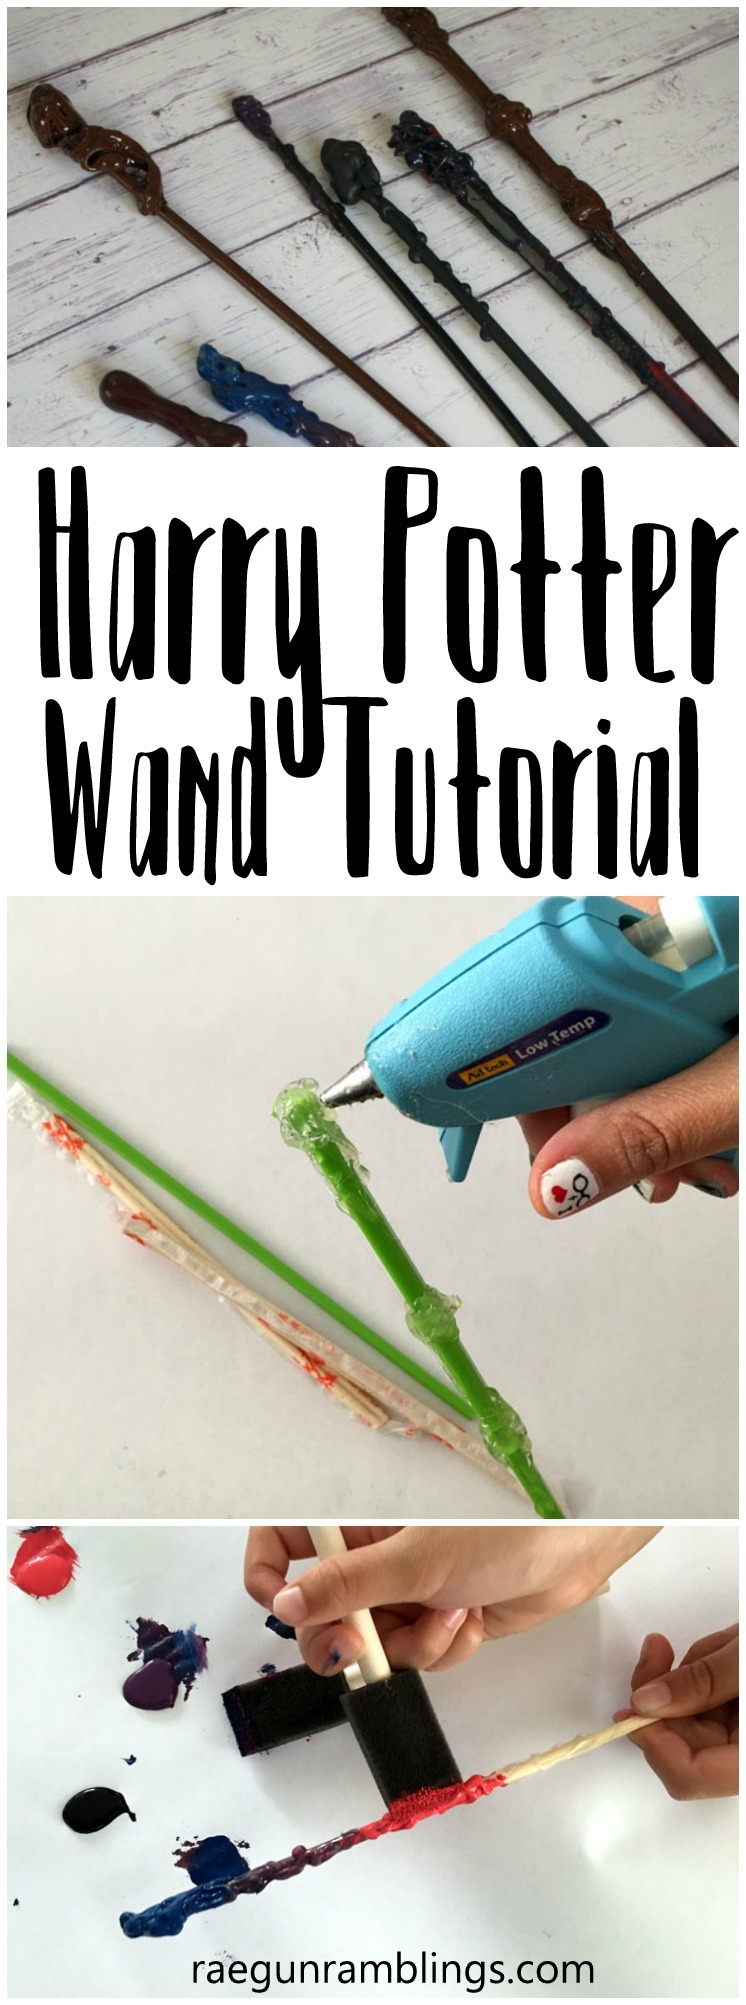 Hands Down These Are Jessica Alba S Best Makeup Looks: How To Make A Harry Potter Wand Tutorial